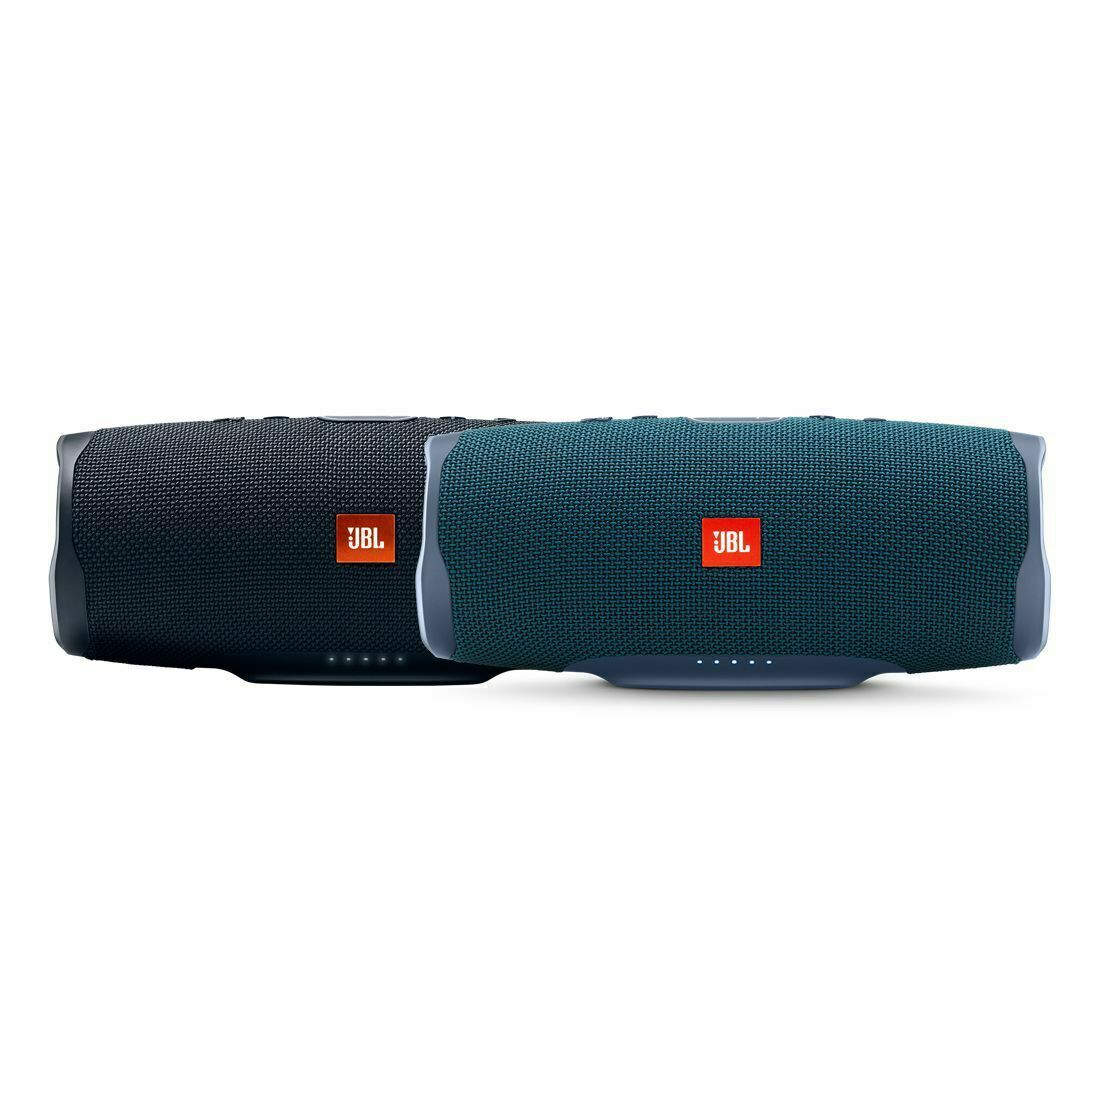 [eBayPlus - Extra 15% off] JBL Charge 4 Portable Bluetooth Speaker With Power Bank